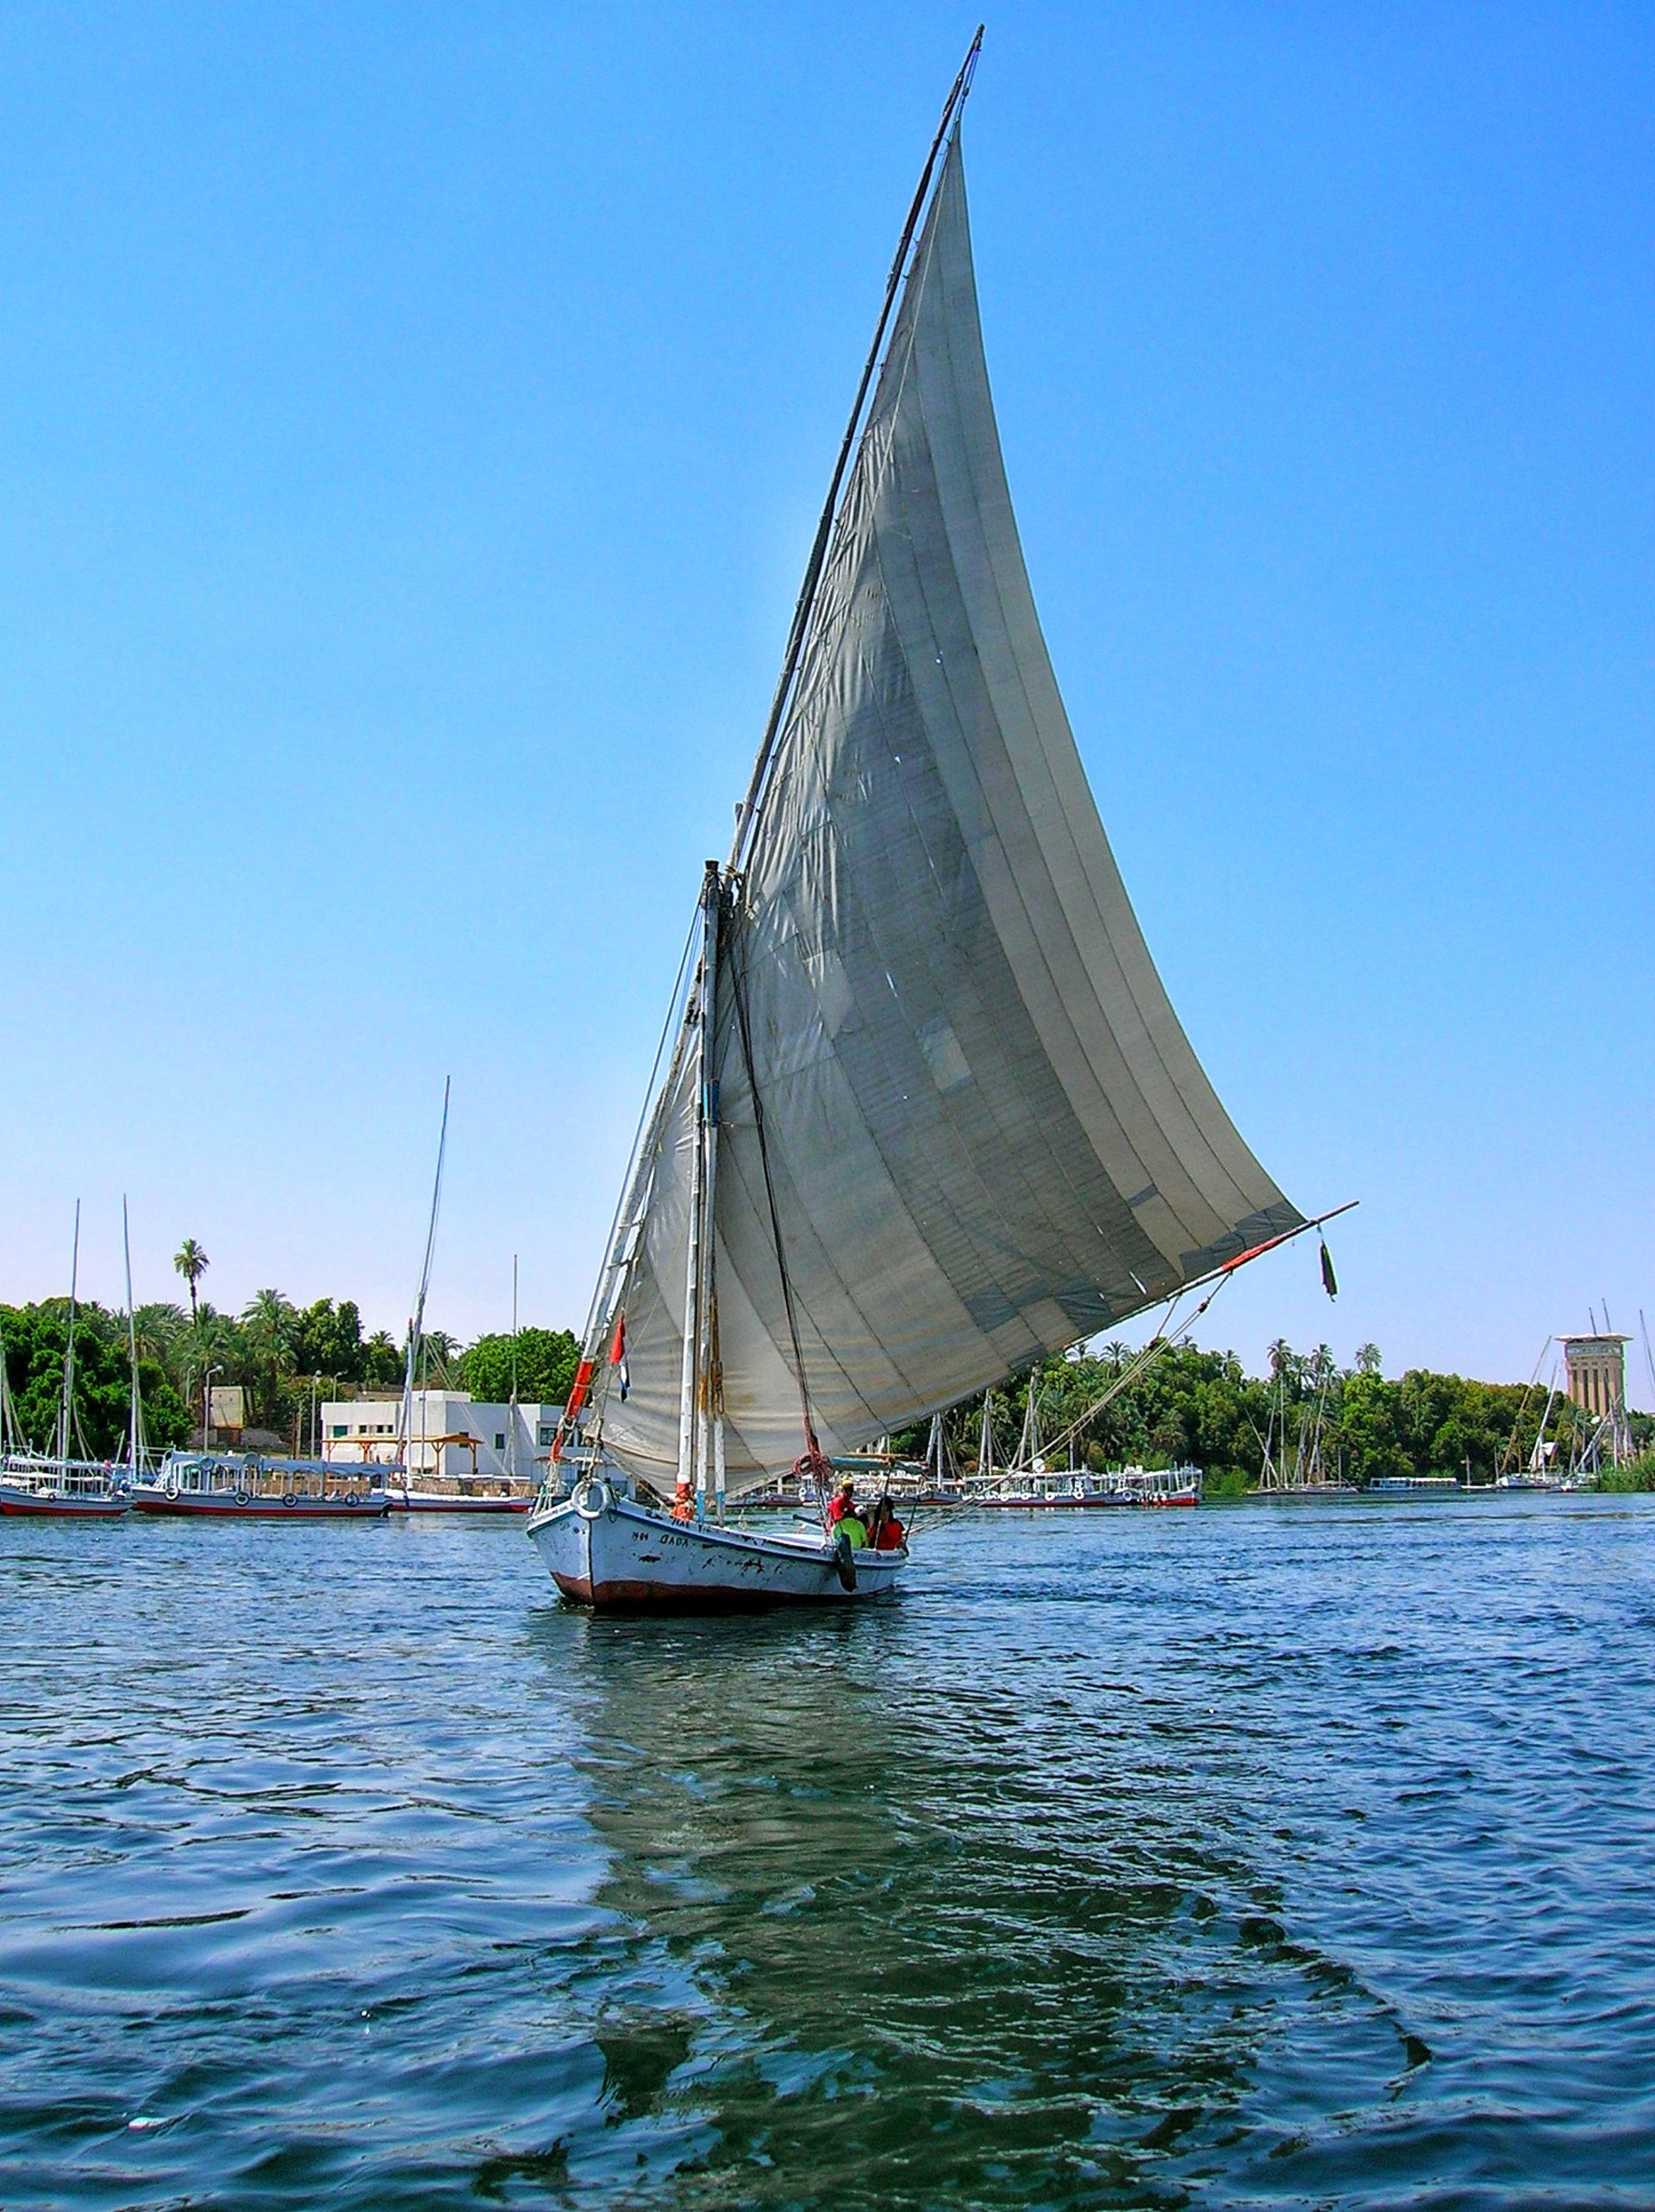 Felucca sailing on the Nile River, Luxor, Egypt.